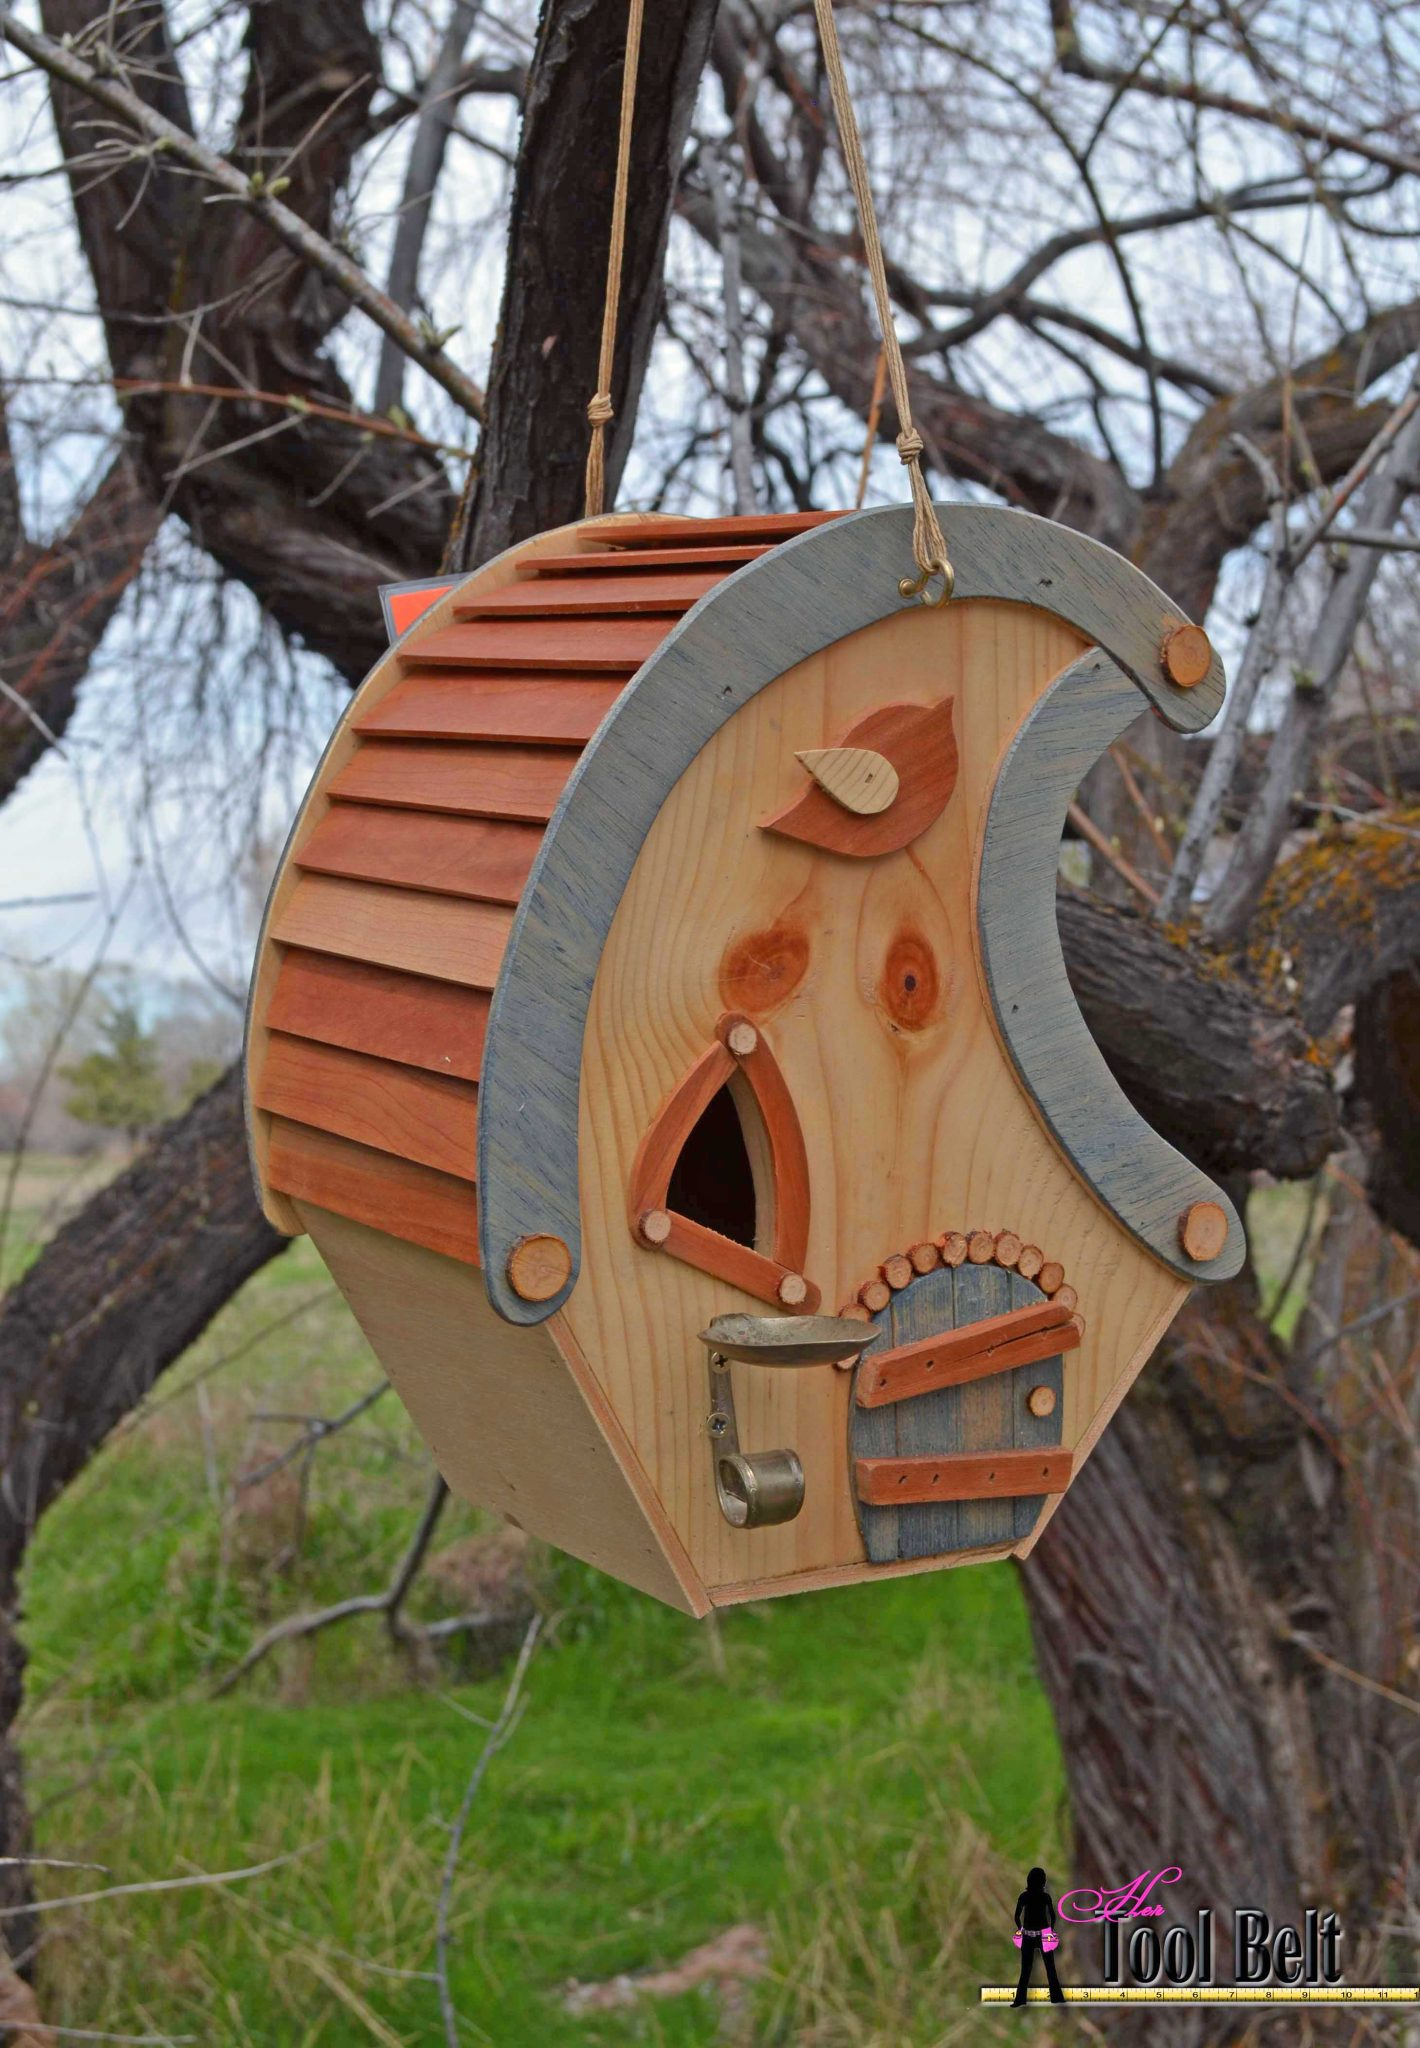 Whimsical Birdhouse Pattern - Hertoolbelt